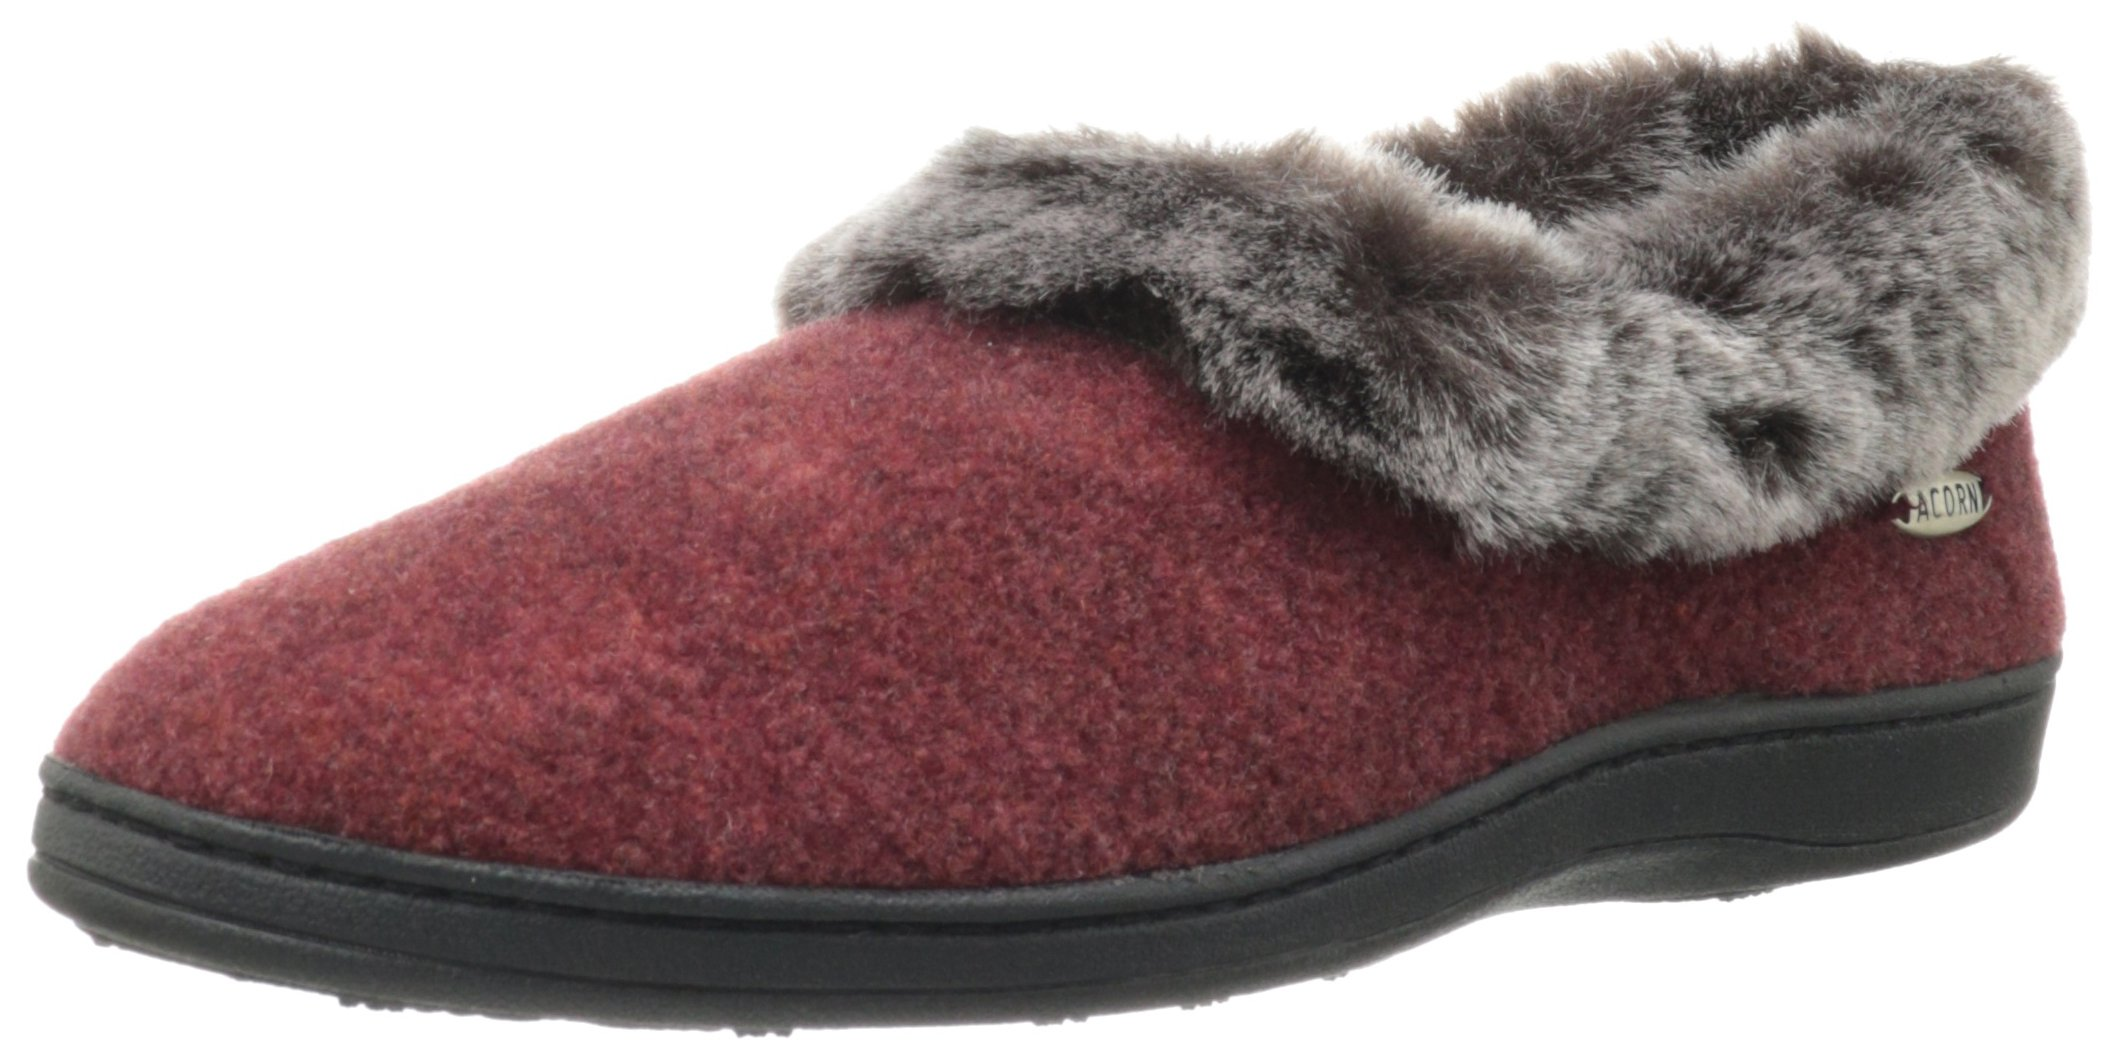 Acorn Women's Faux Chinchilla Collar Slipper,Crackleberry,Large/8-9 B(M) US